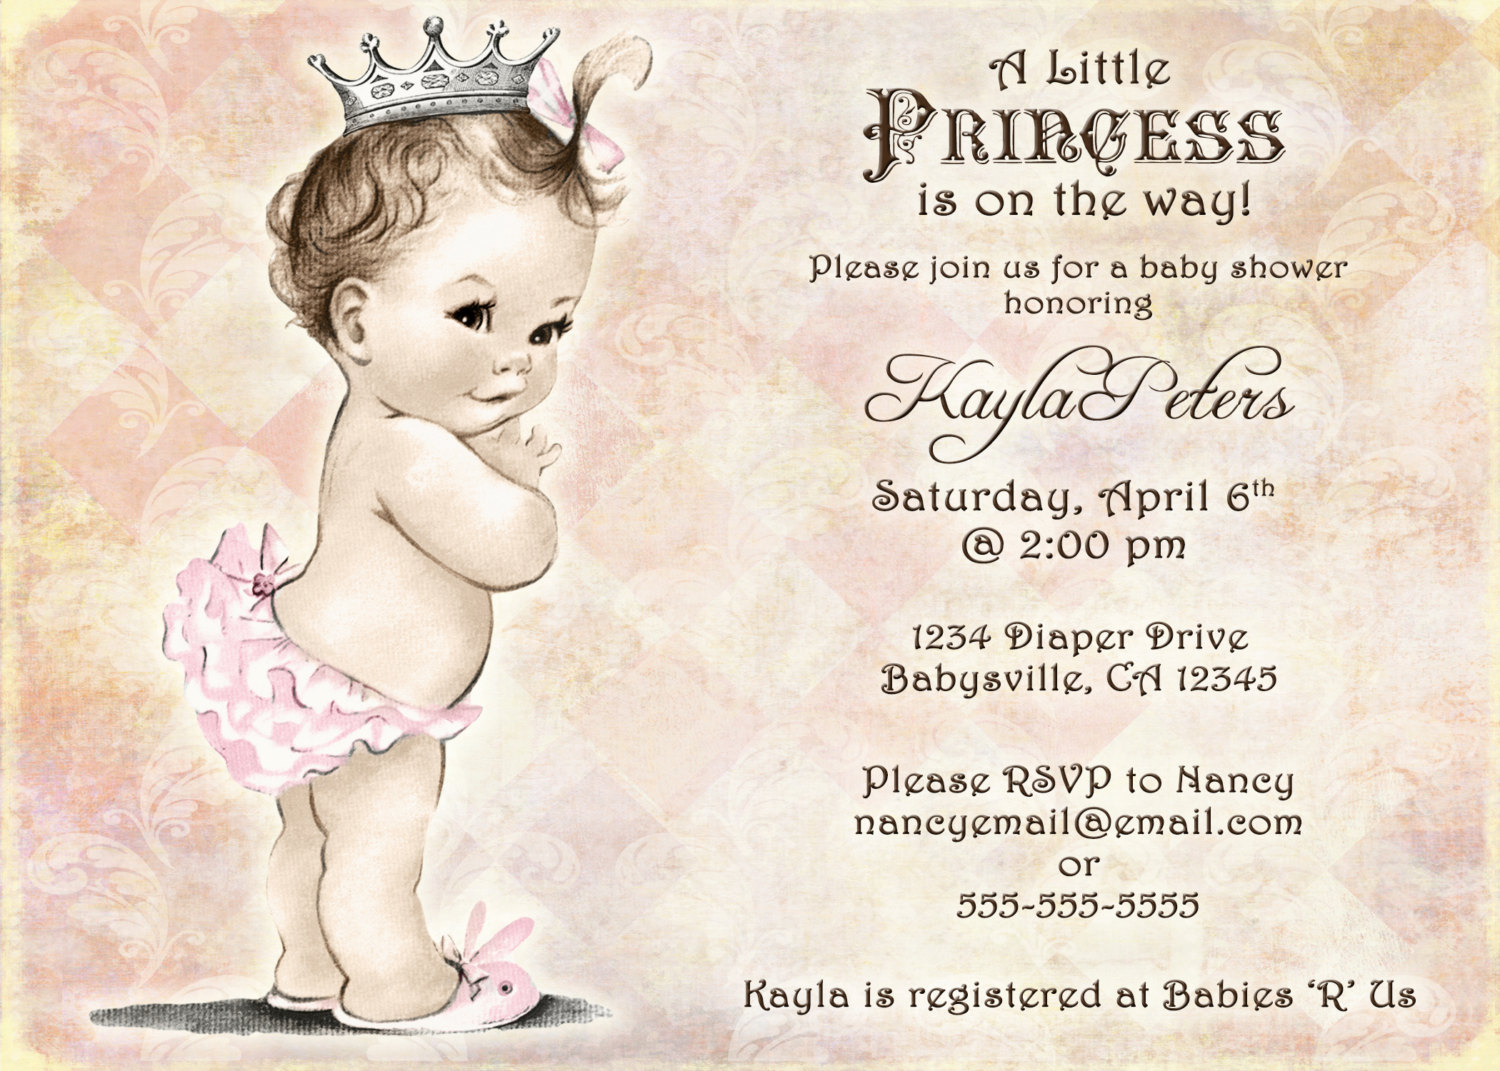 Full Size of Baby Shower:baby Shower Invitations Baby Boy Shower Ideas Themes For Baby Girl Nursery Baby Shower Themes Baby Shower Themes For Girls